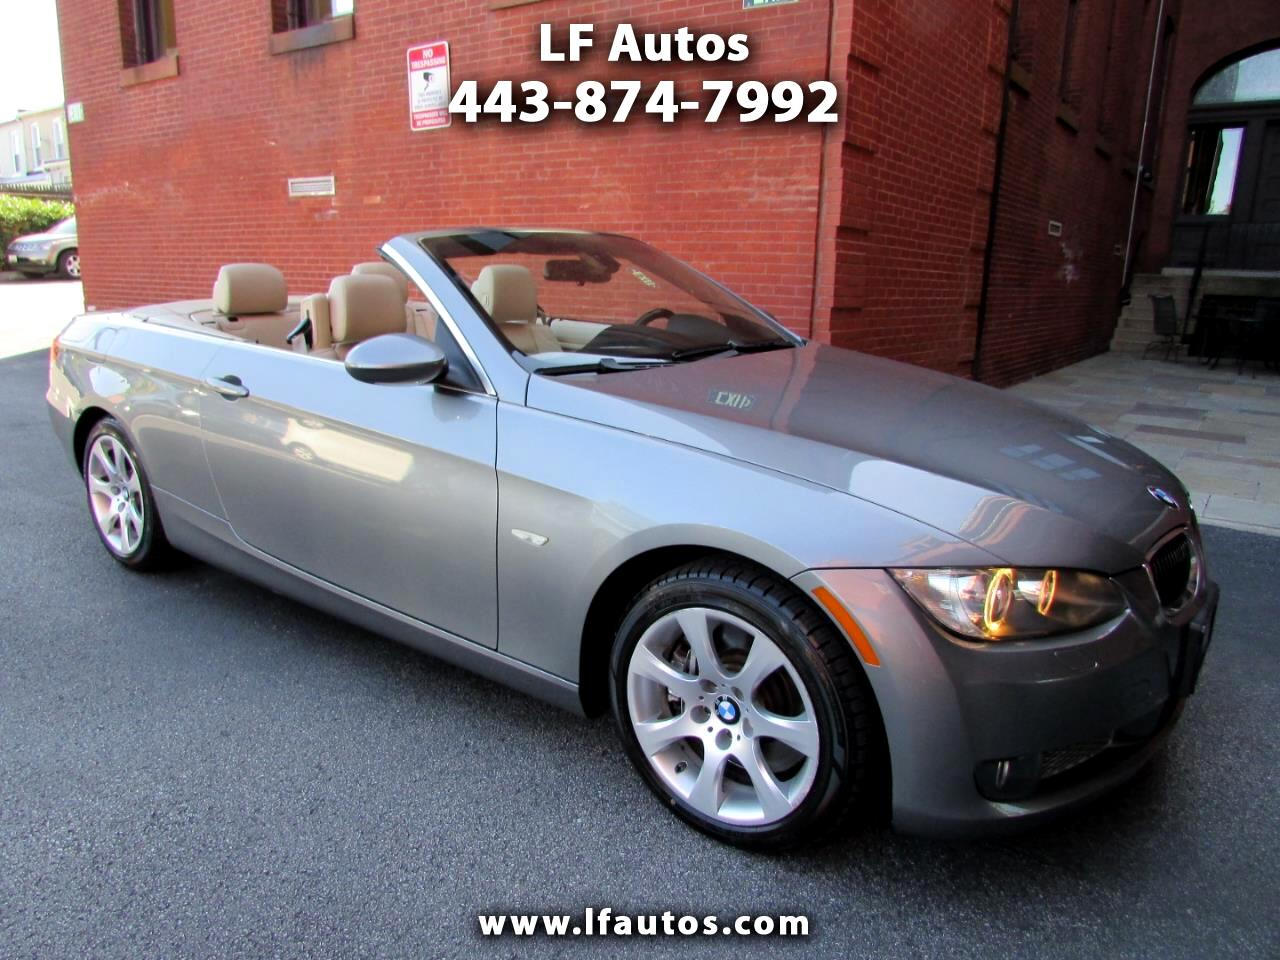 2009 BMW 3 Series 2dr Conv 335i